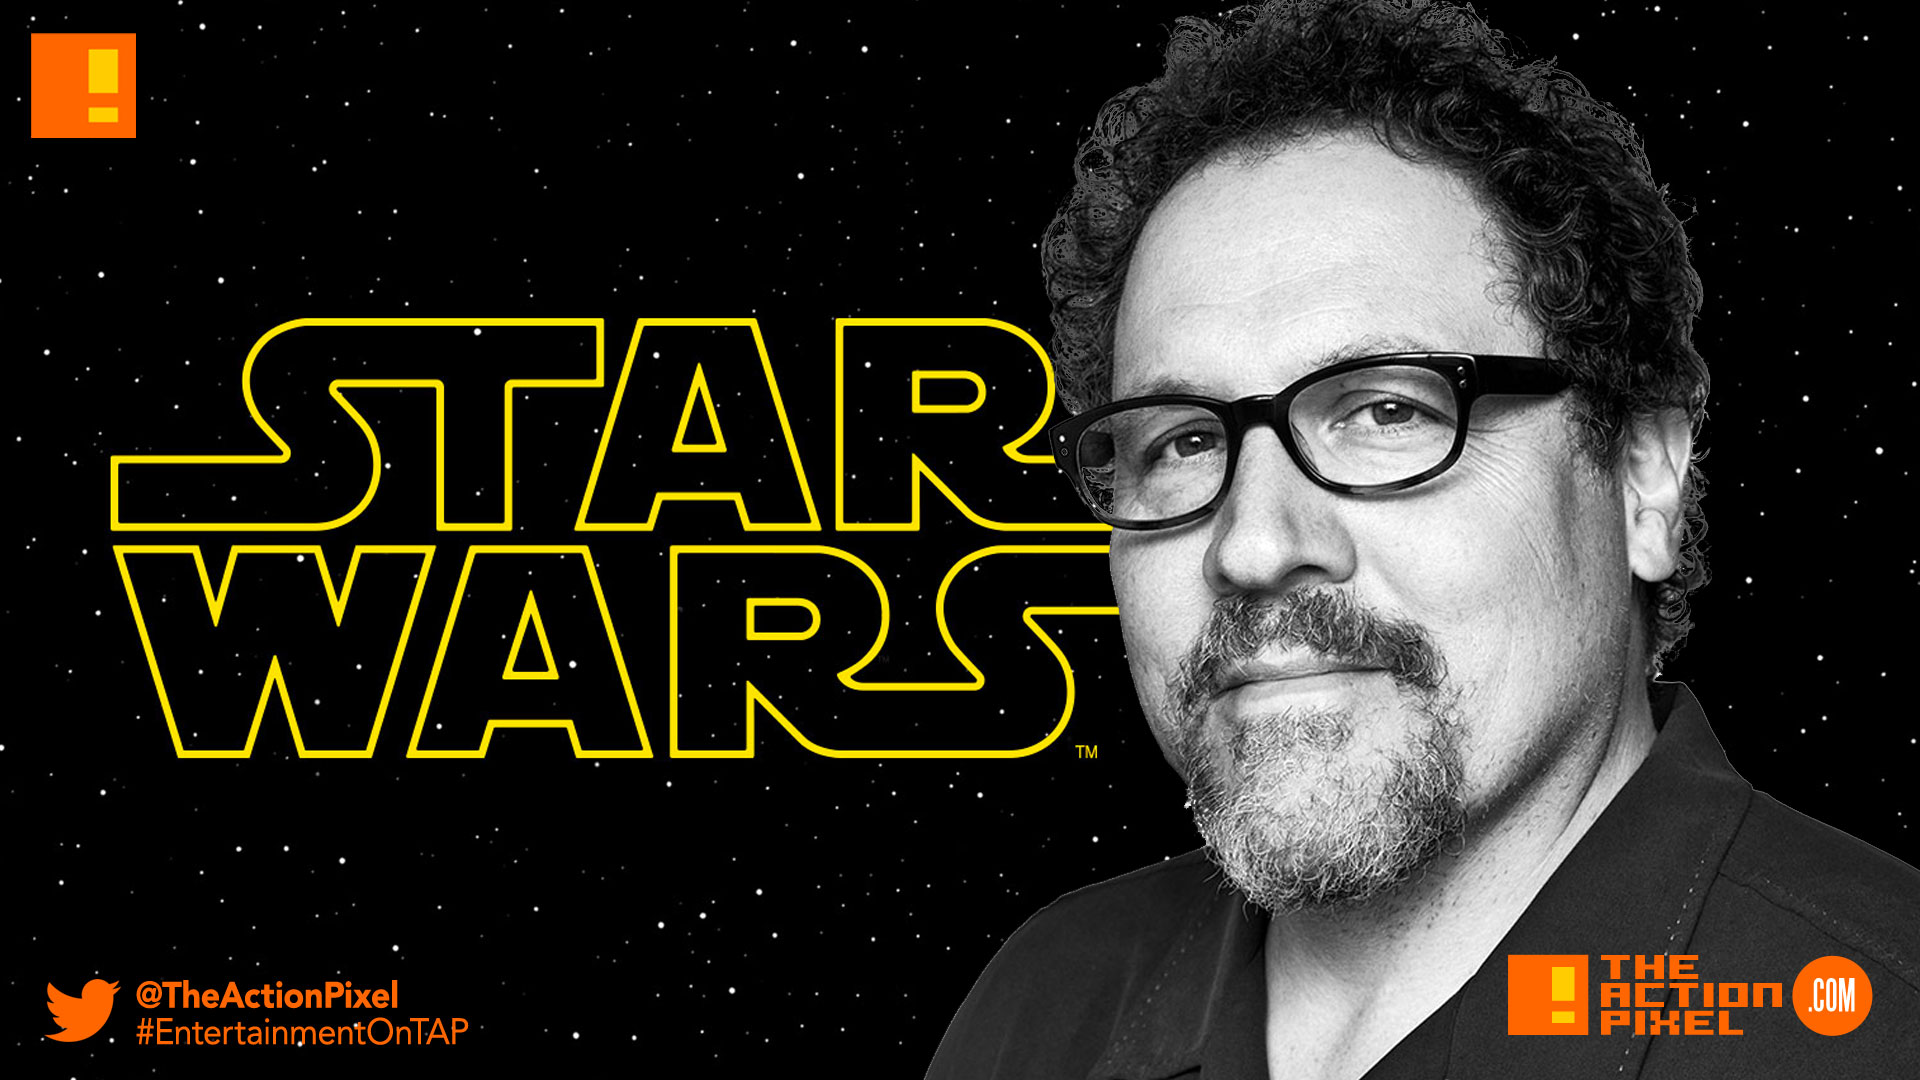 jON FAVREAU,star wars, executive producer, writer, crew, live-action, tv series, star wars, the action pixel, entertainment on tap